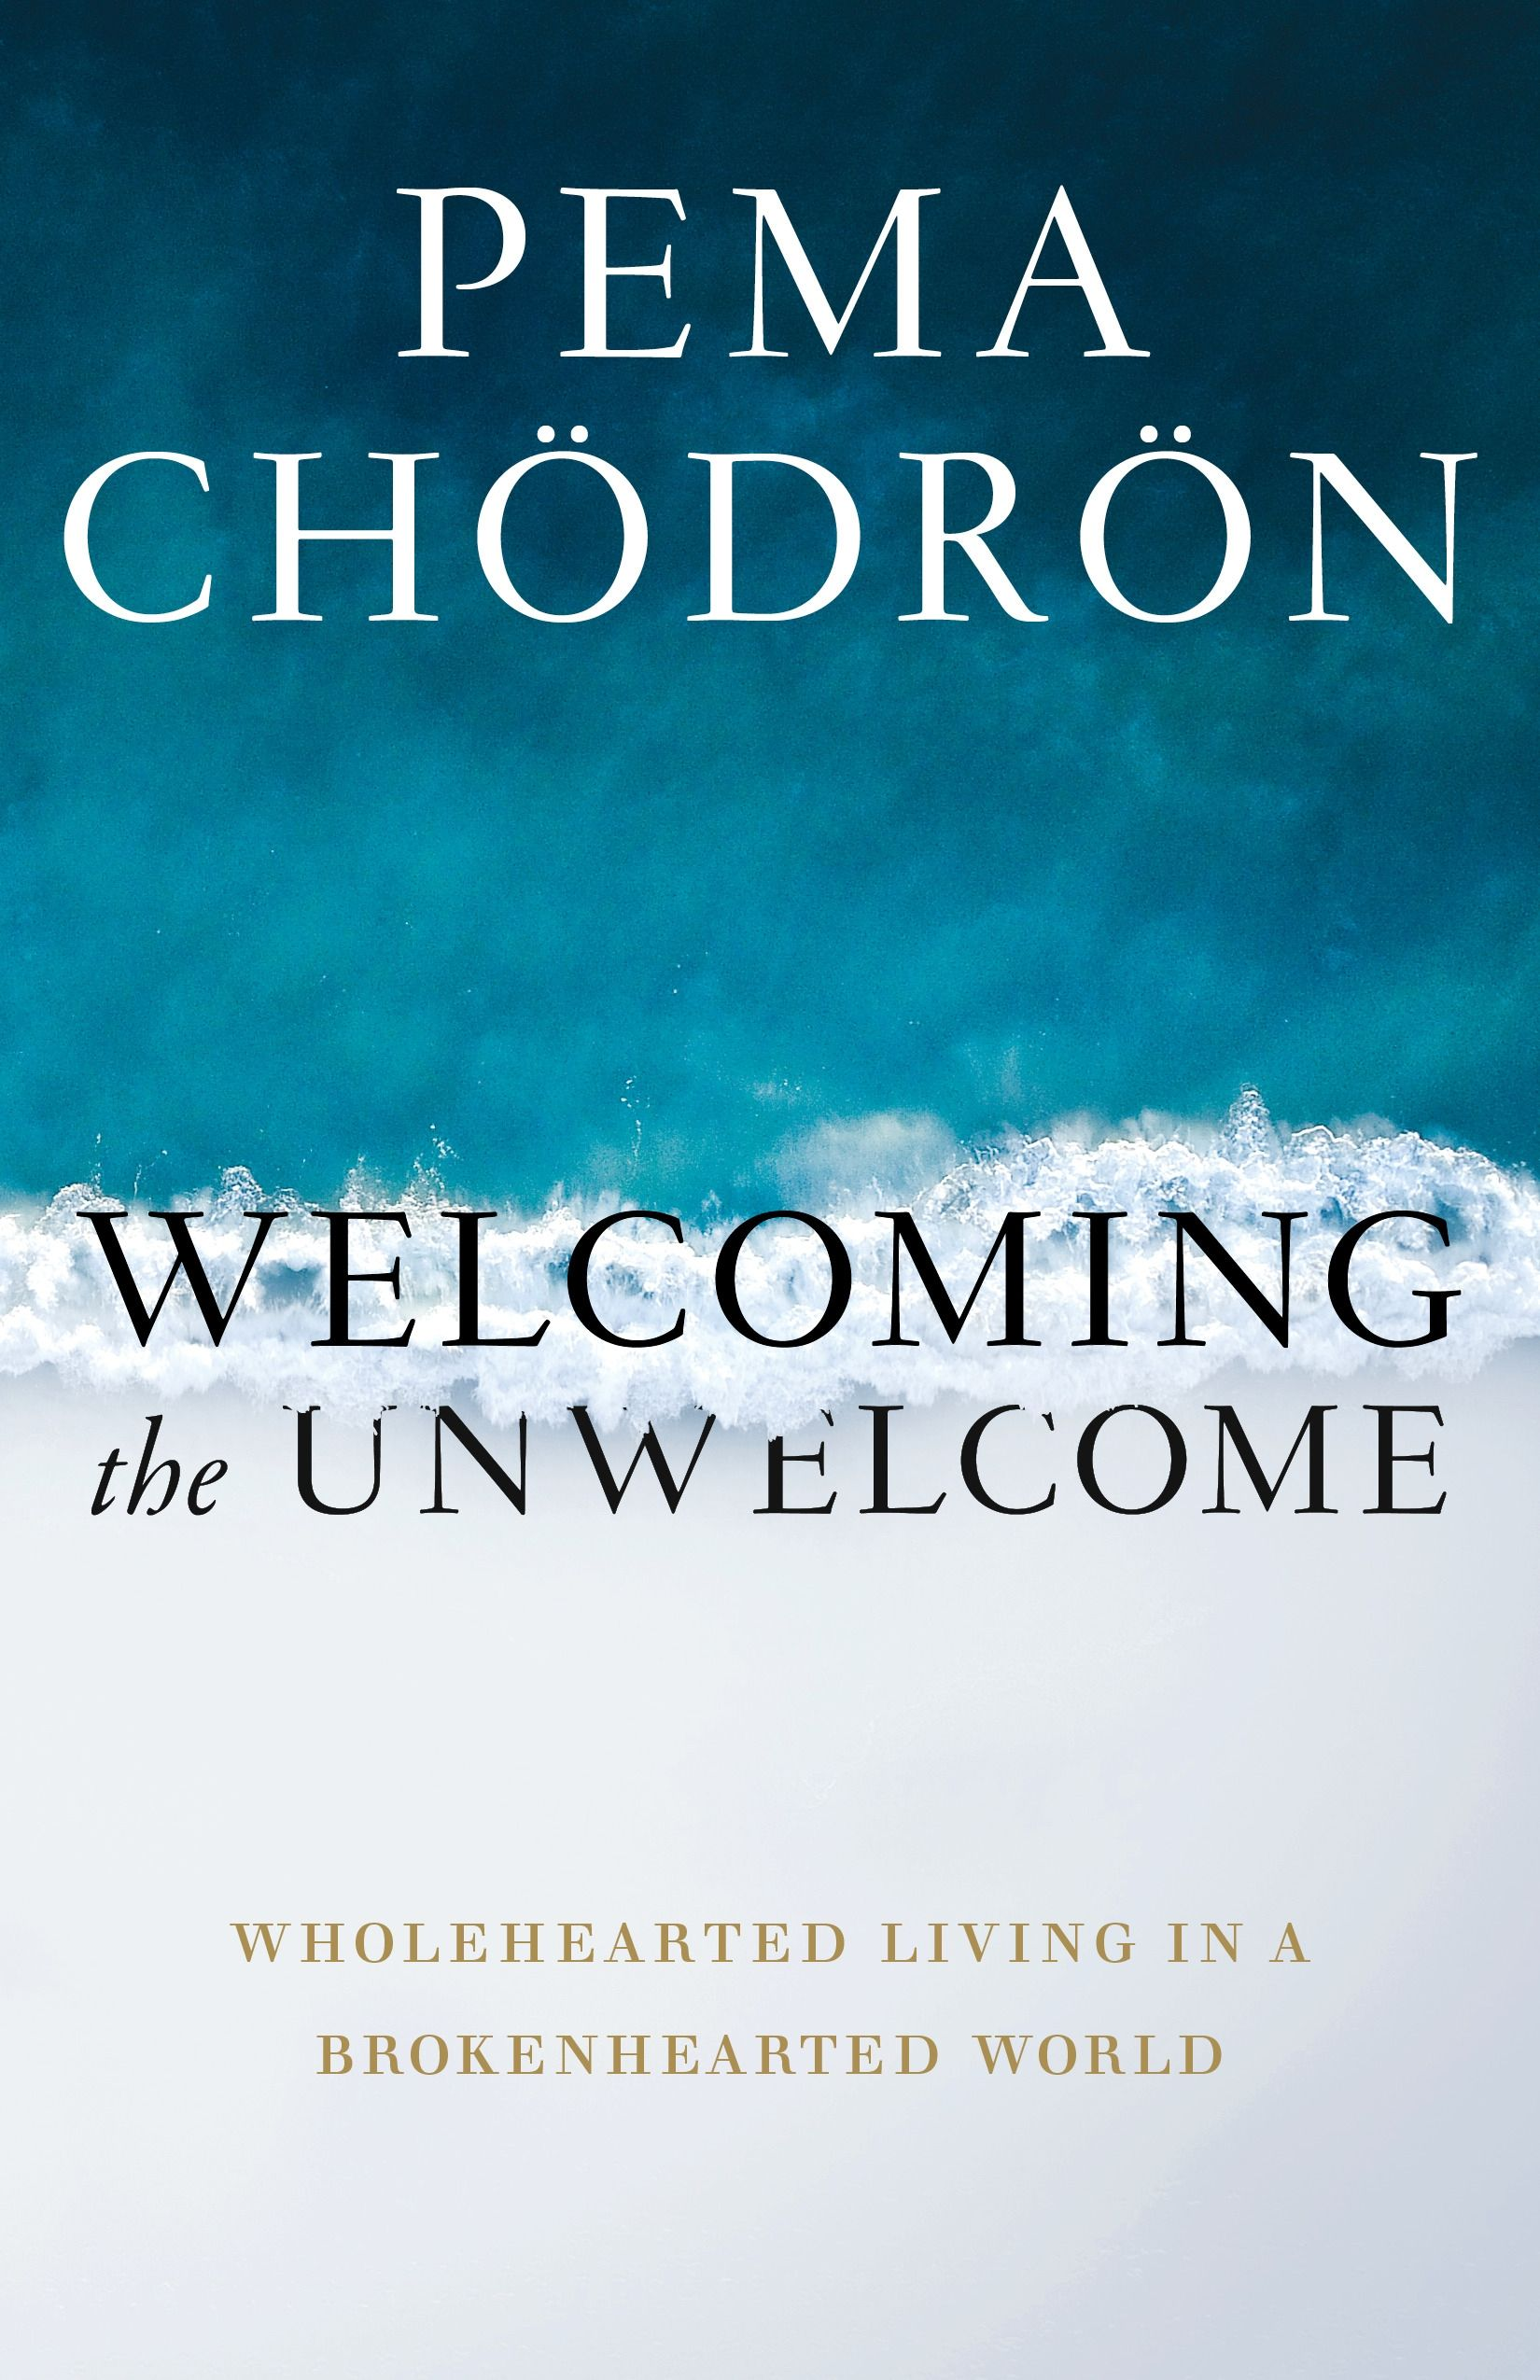 Pdf Download Welcoming The Unwelcome By Pema Chodron With Images